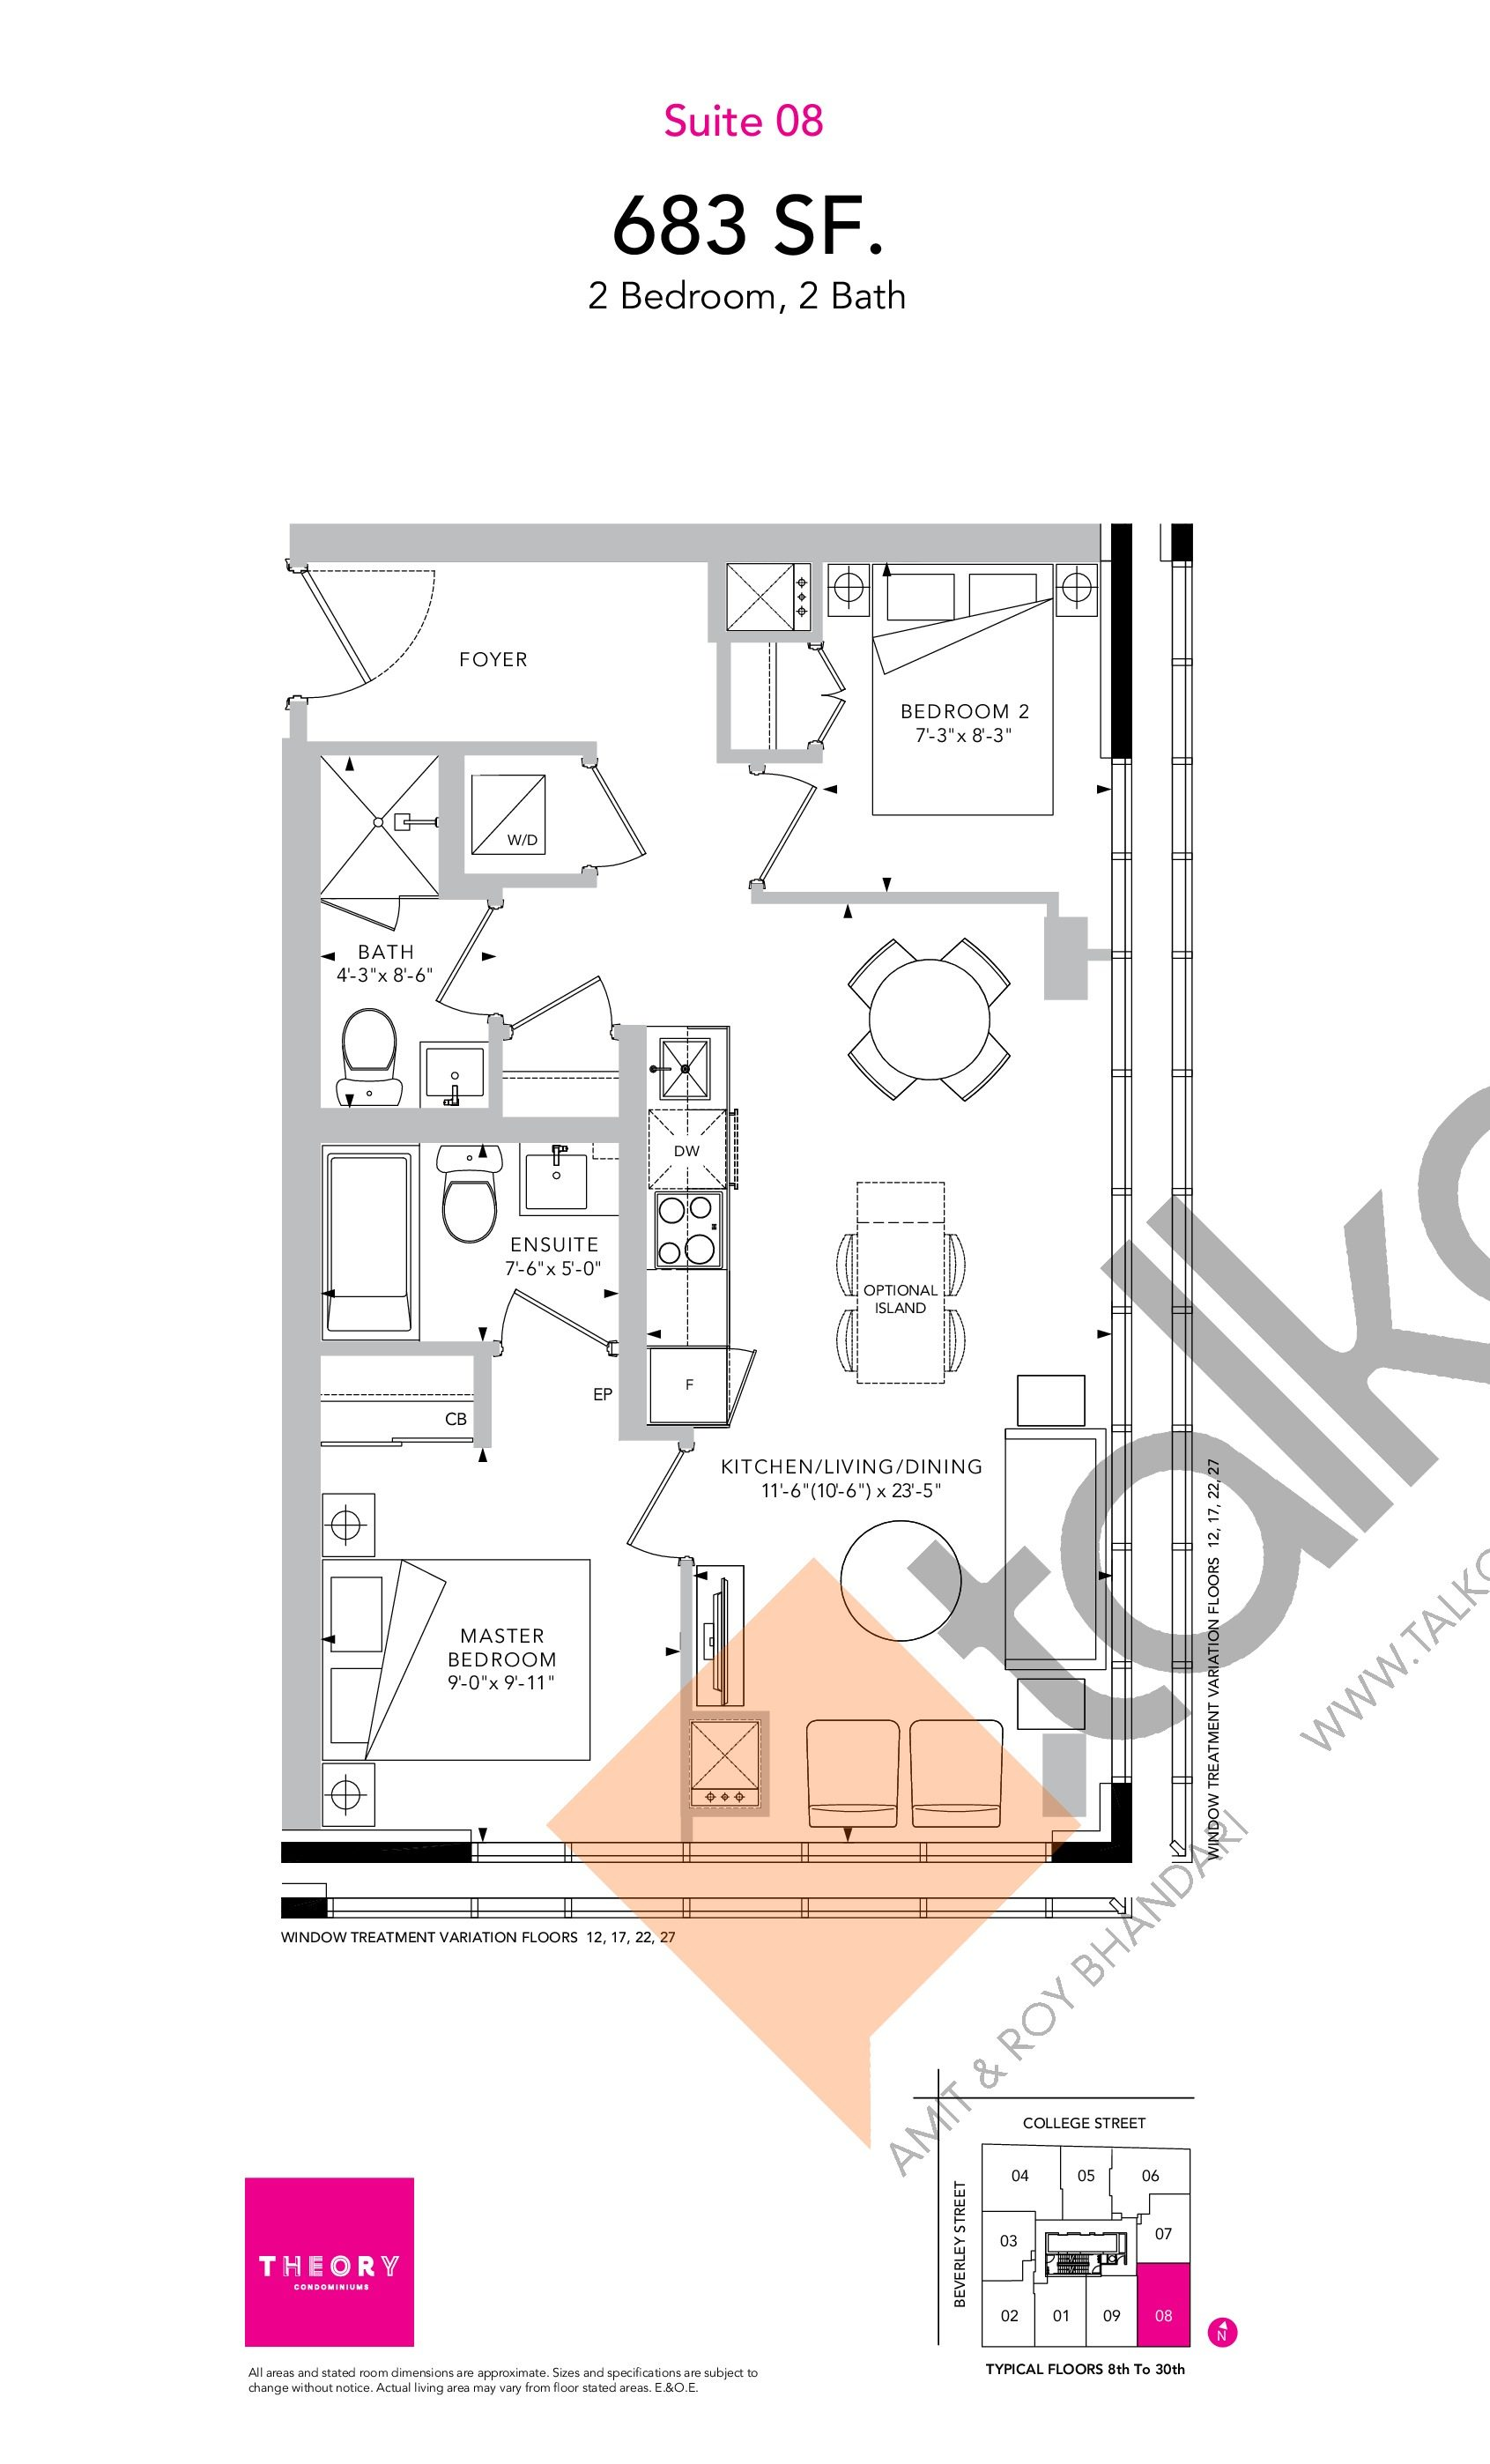 Suite 08 Floor Plan at Theory Condos - 683 sq.ft